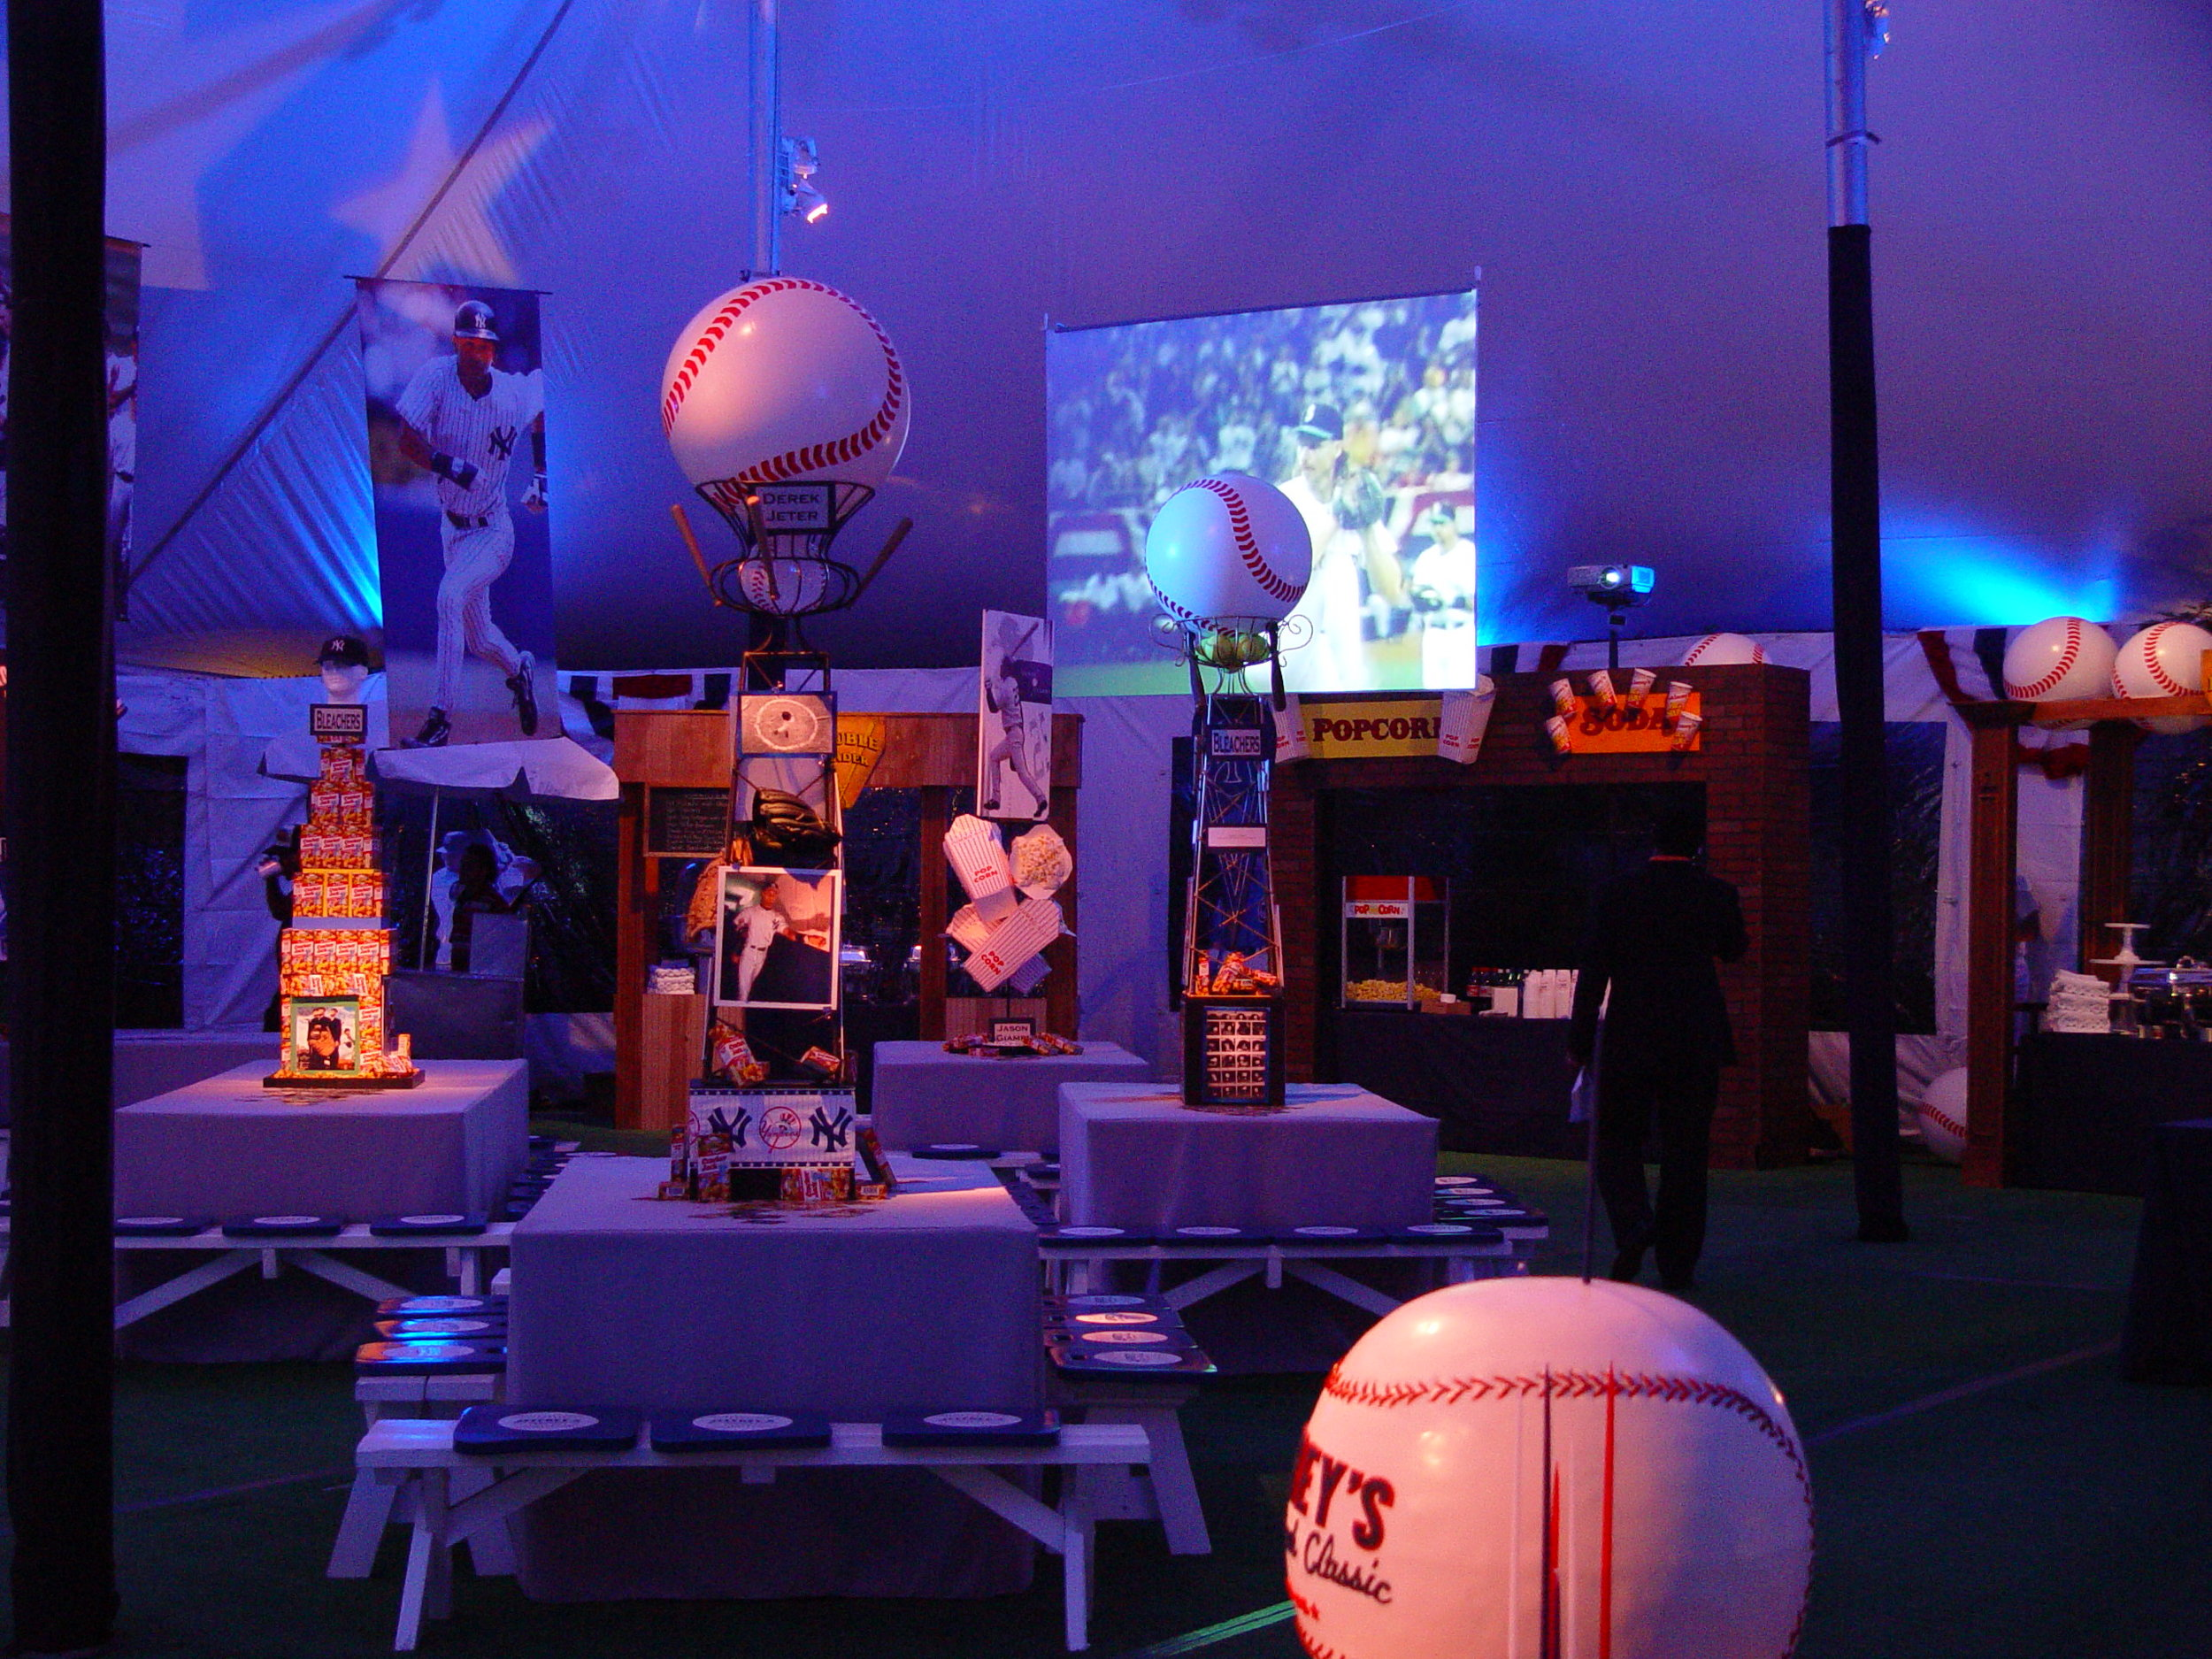 NJ+NY+PA+event+rentals+centerpiece+bar+mitzvah+bat+mitzvahs+rental+theme+party+sports+decorations+eggsotic+events.jpg